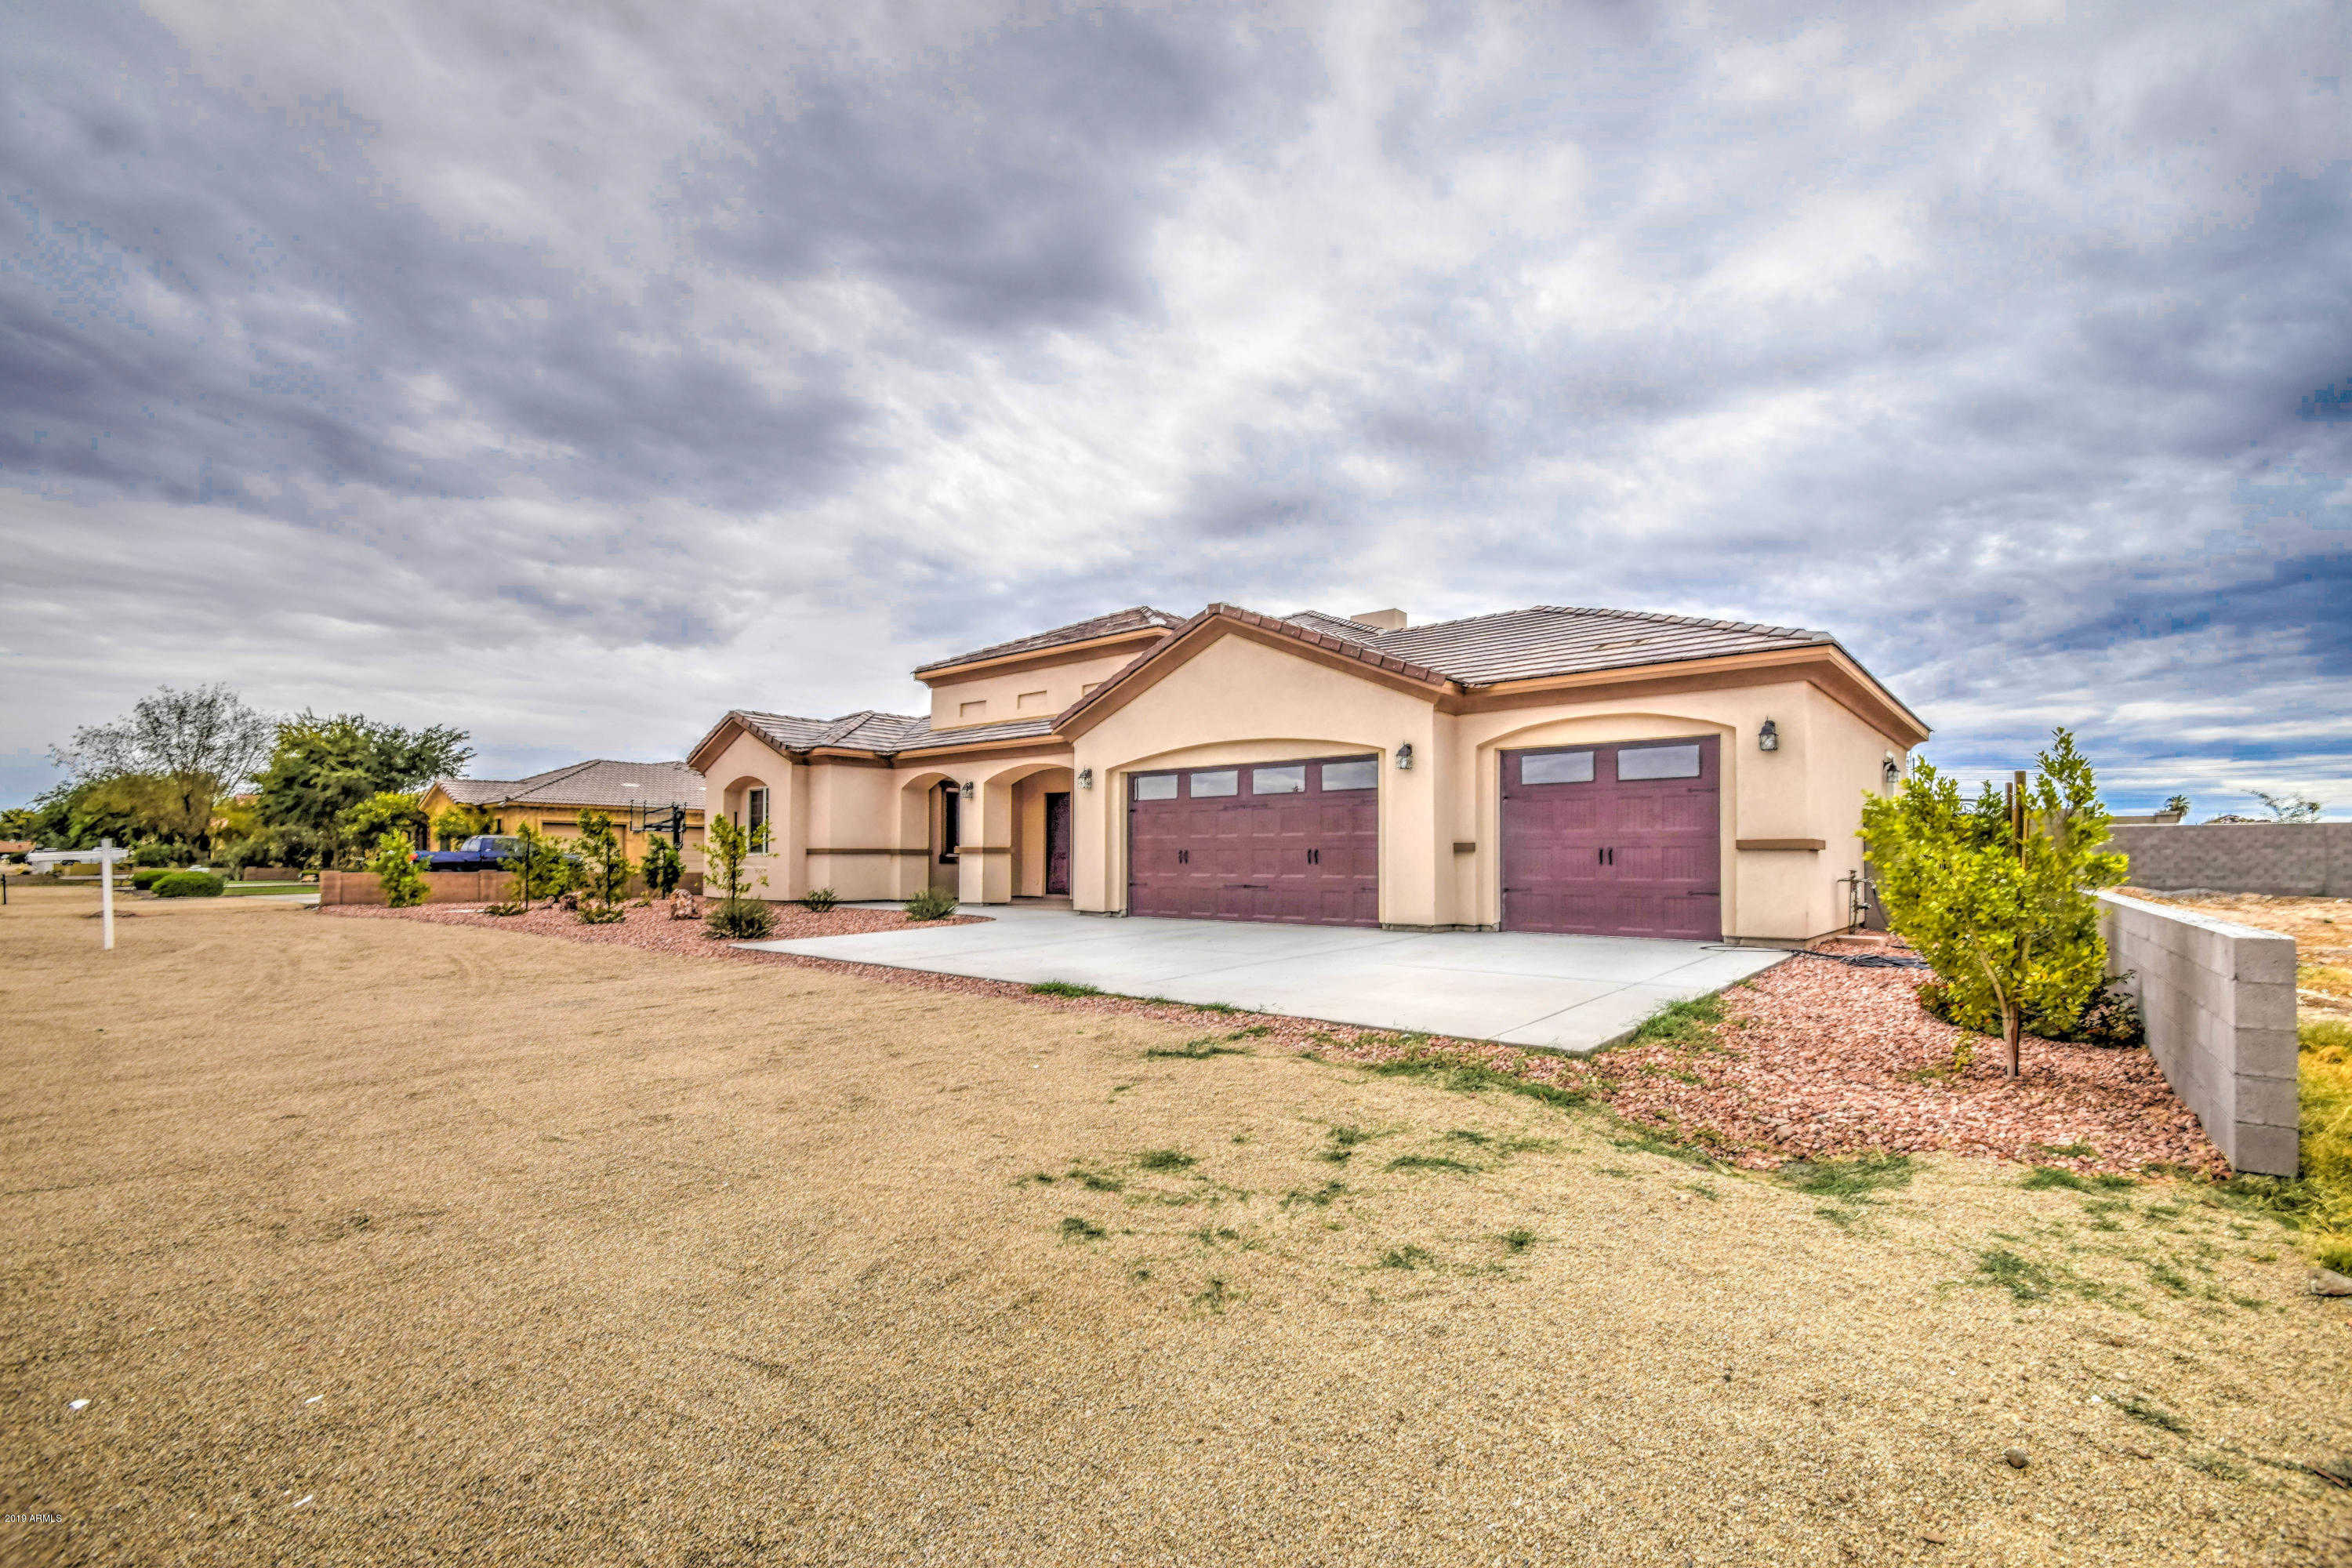 $495,000 - 5Br/6Ba - Home for Sale in Unk, Glendale